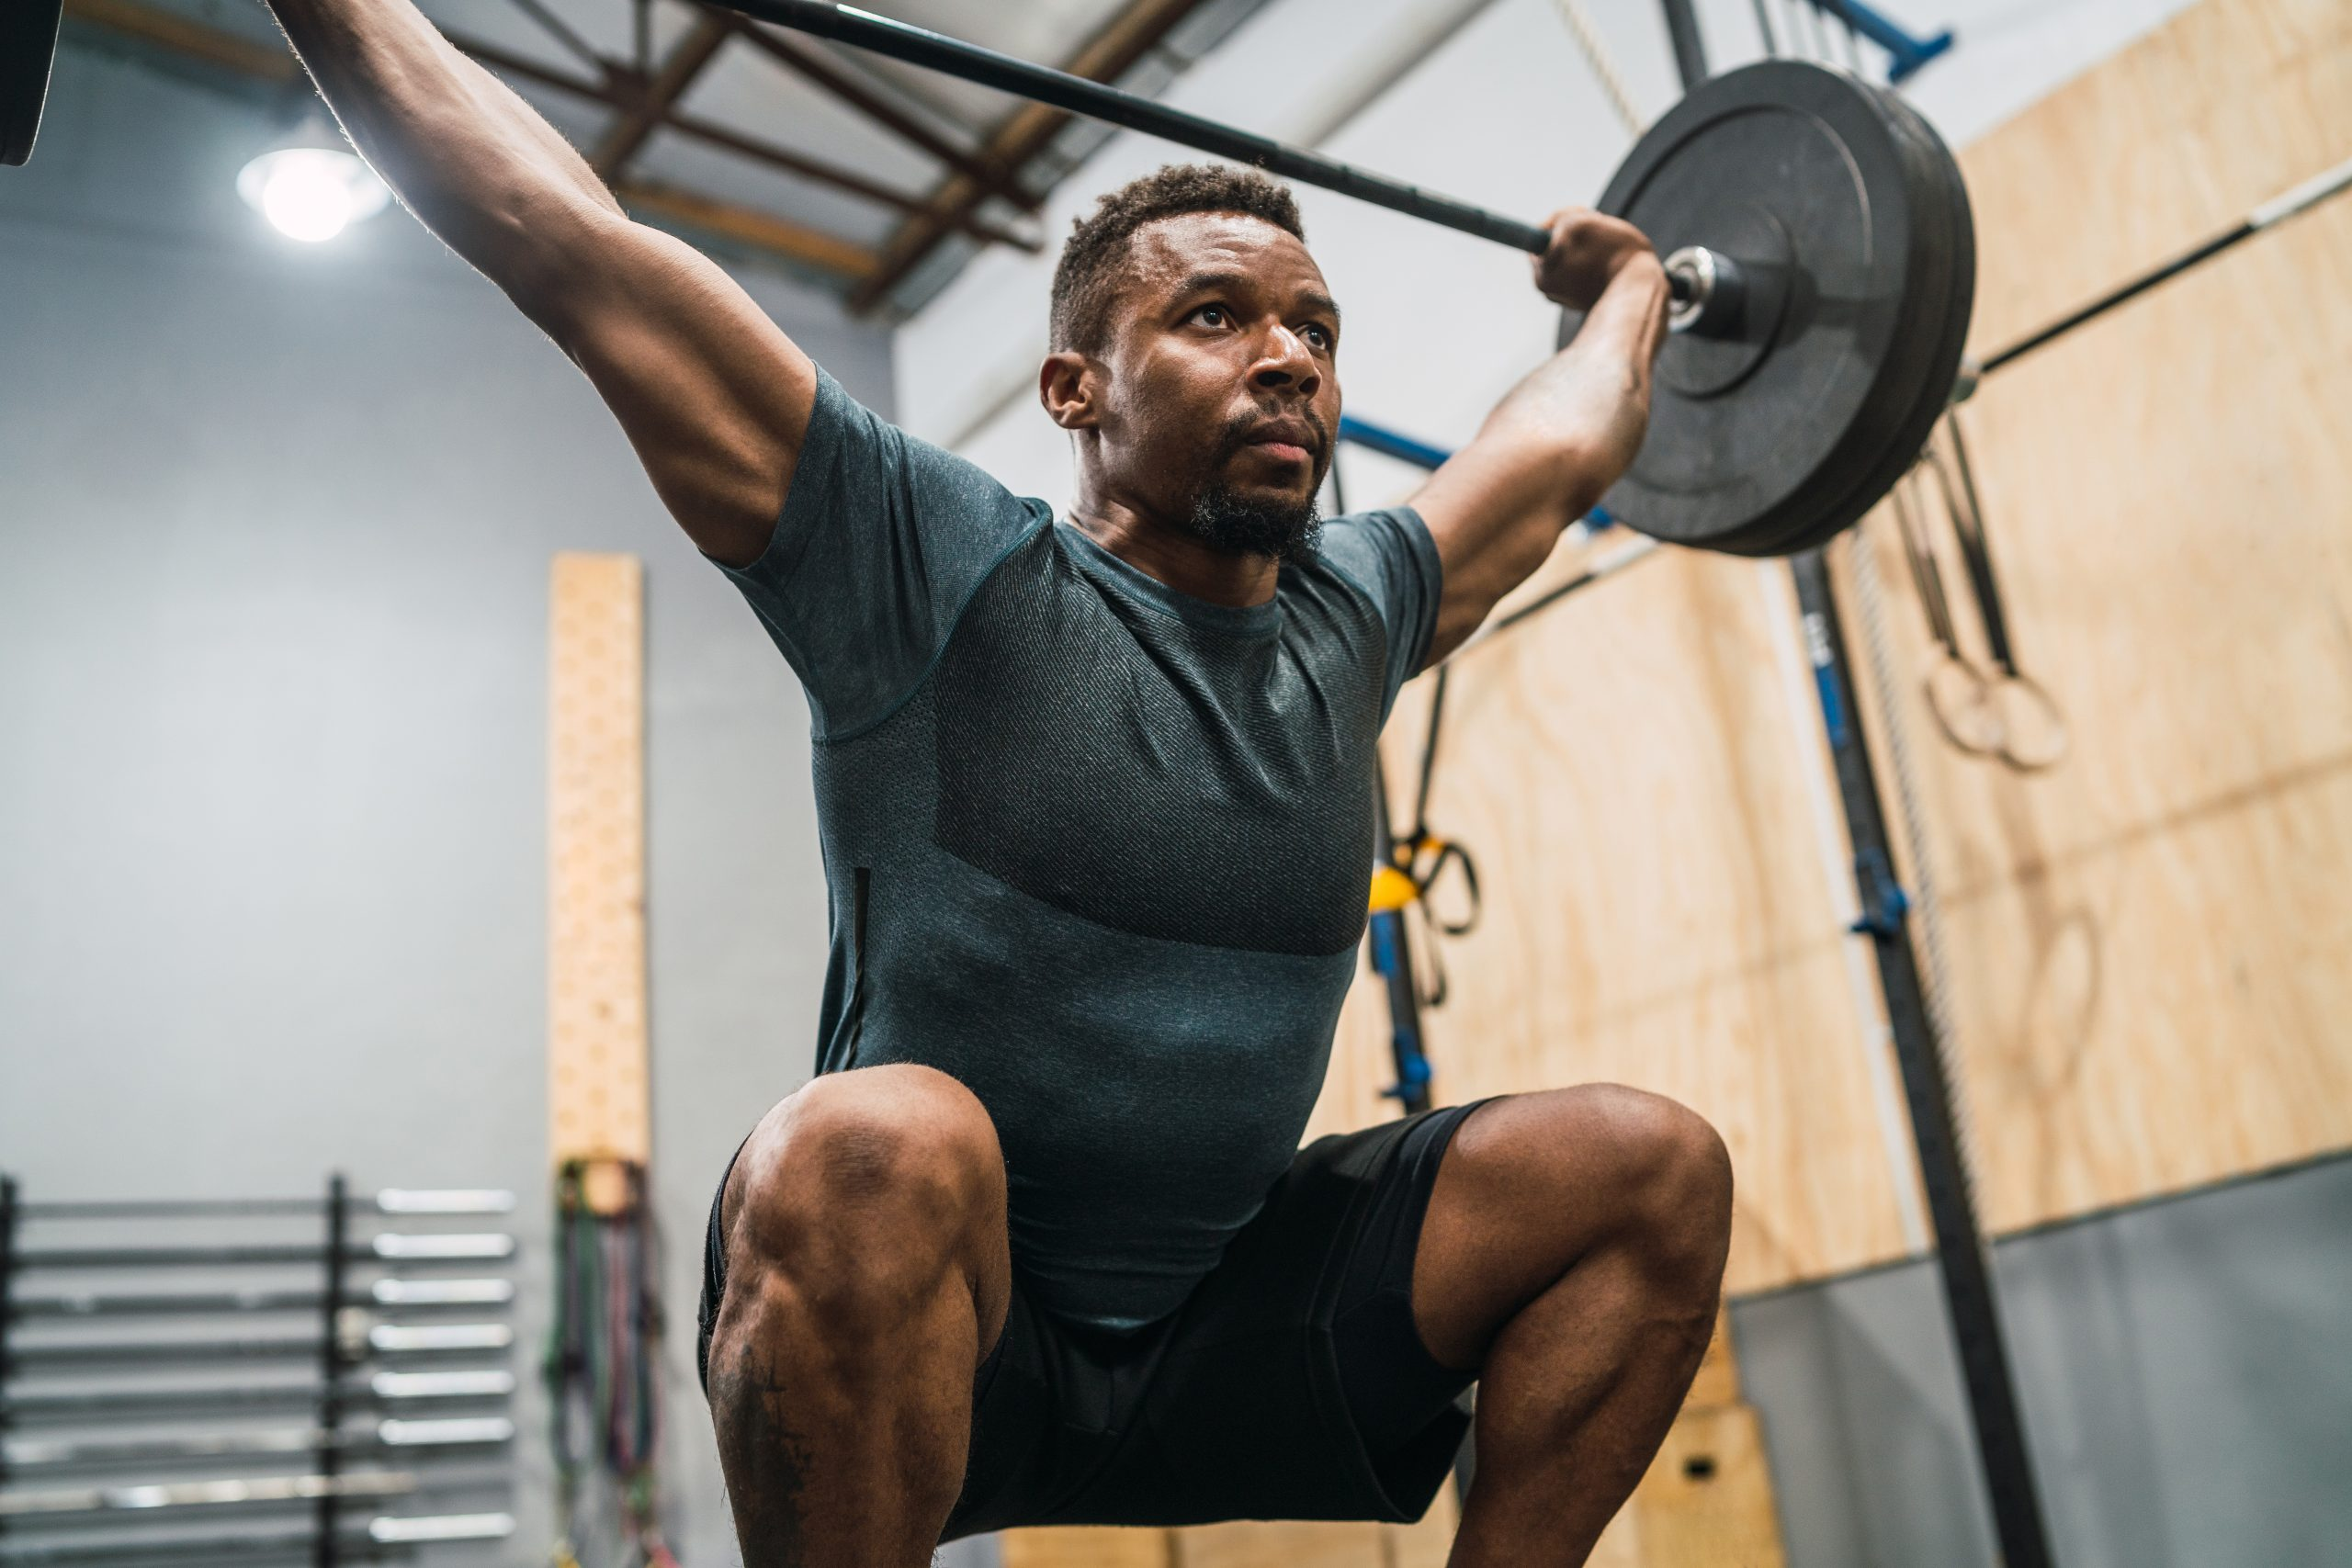 Crossfit athlete doing exercise with a barbell